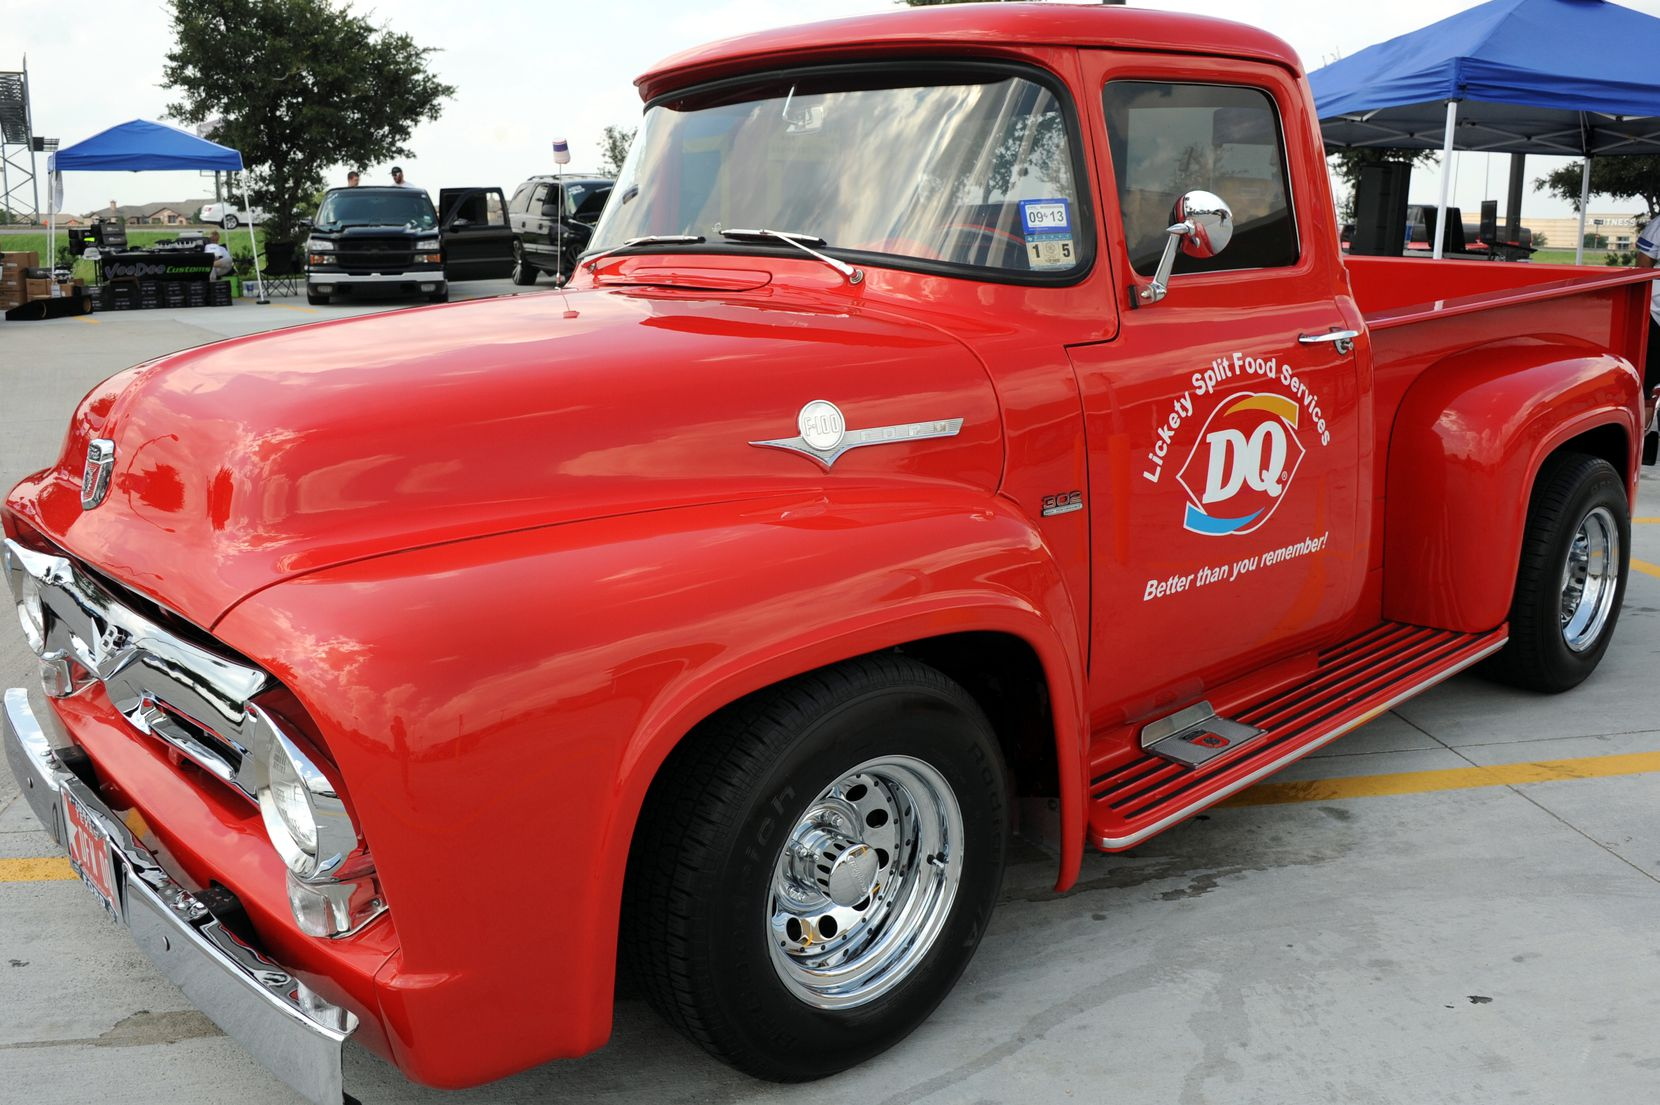 Franchisee Michael Clarke referred to this 1956 Ford truck as the Dairy Queen 'mascot' in an interview in 2014.